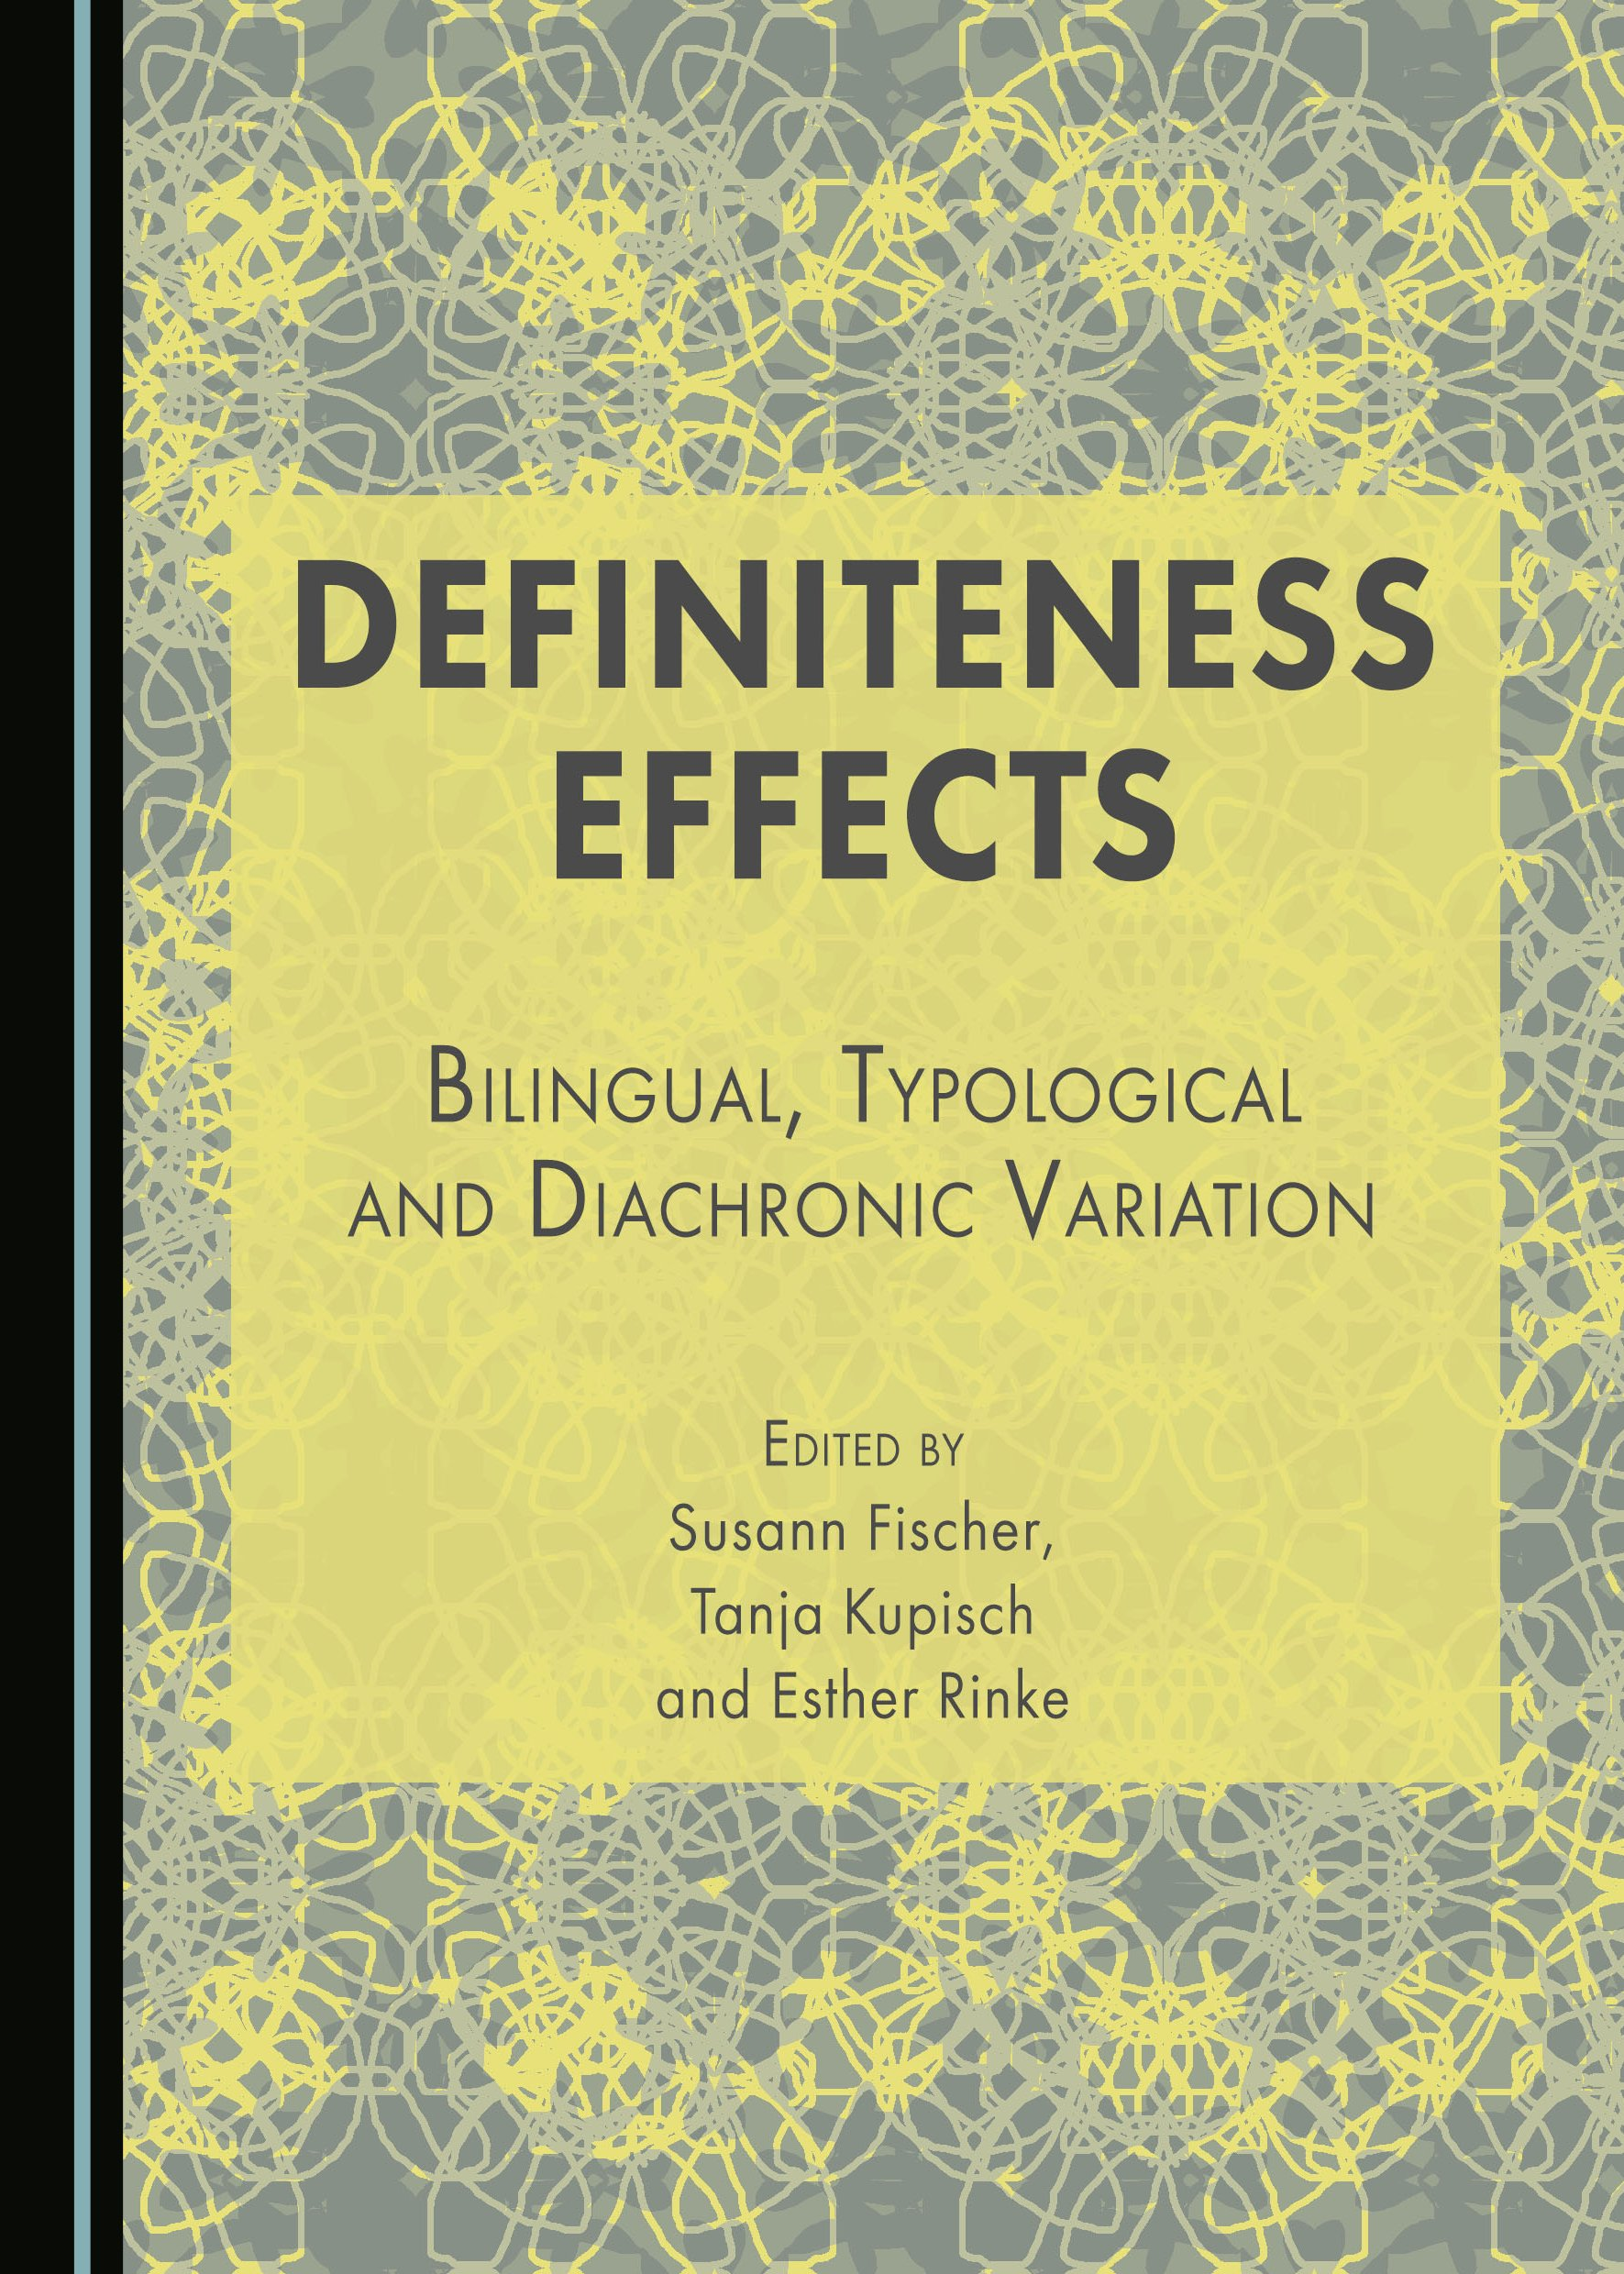 Definiteness Effects: Bilingual, Typological and Diachronic Variation